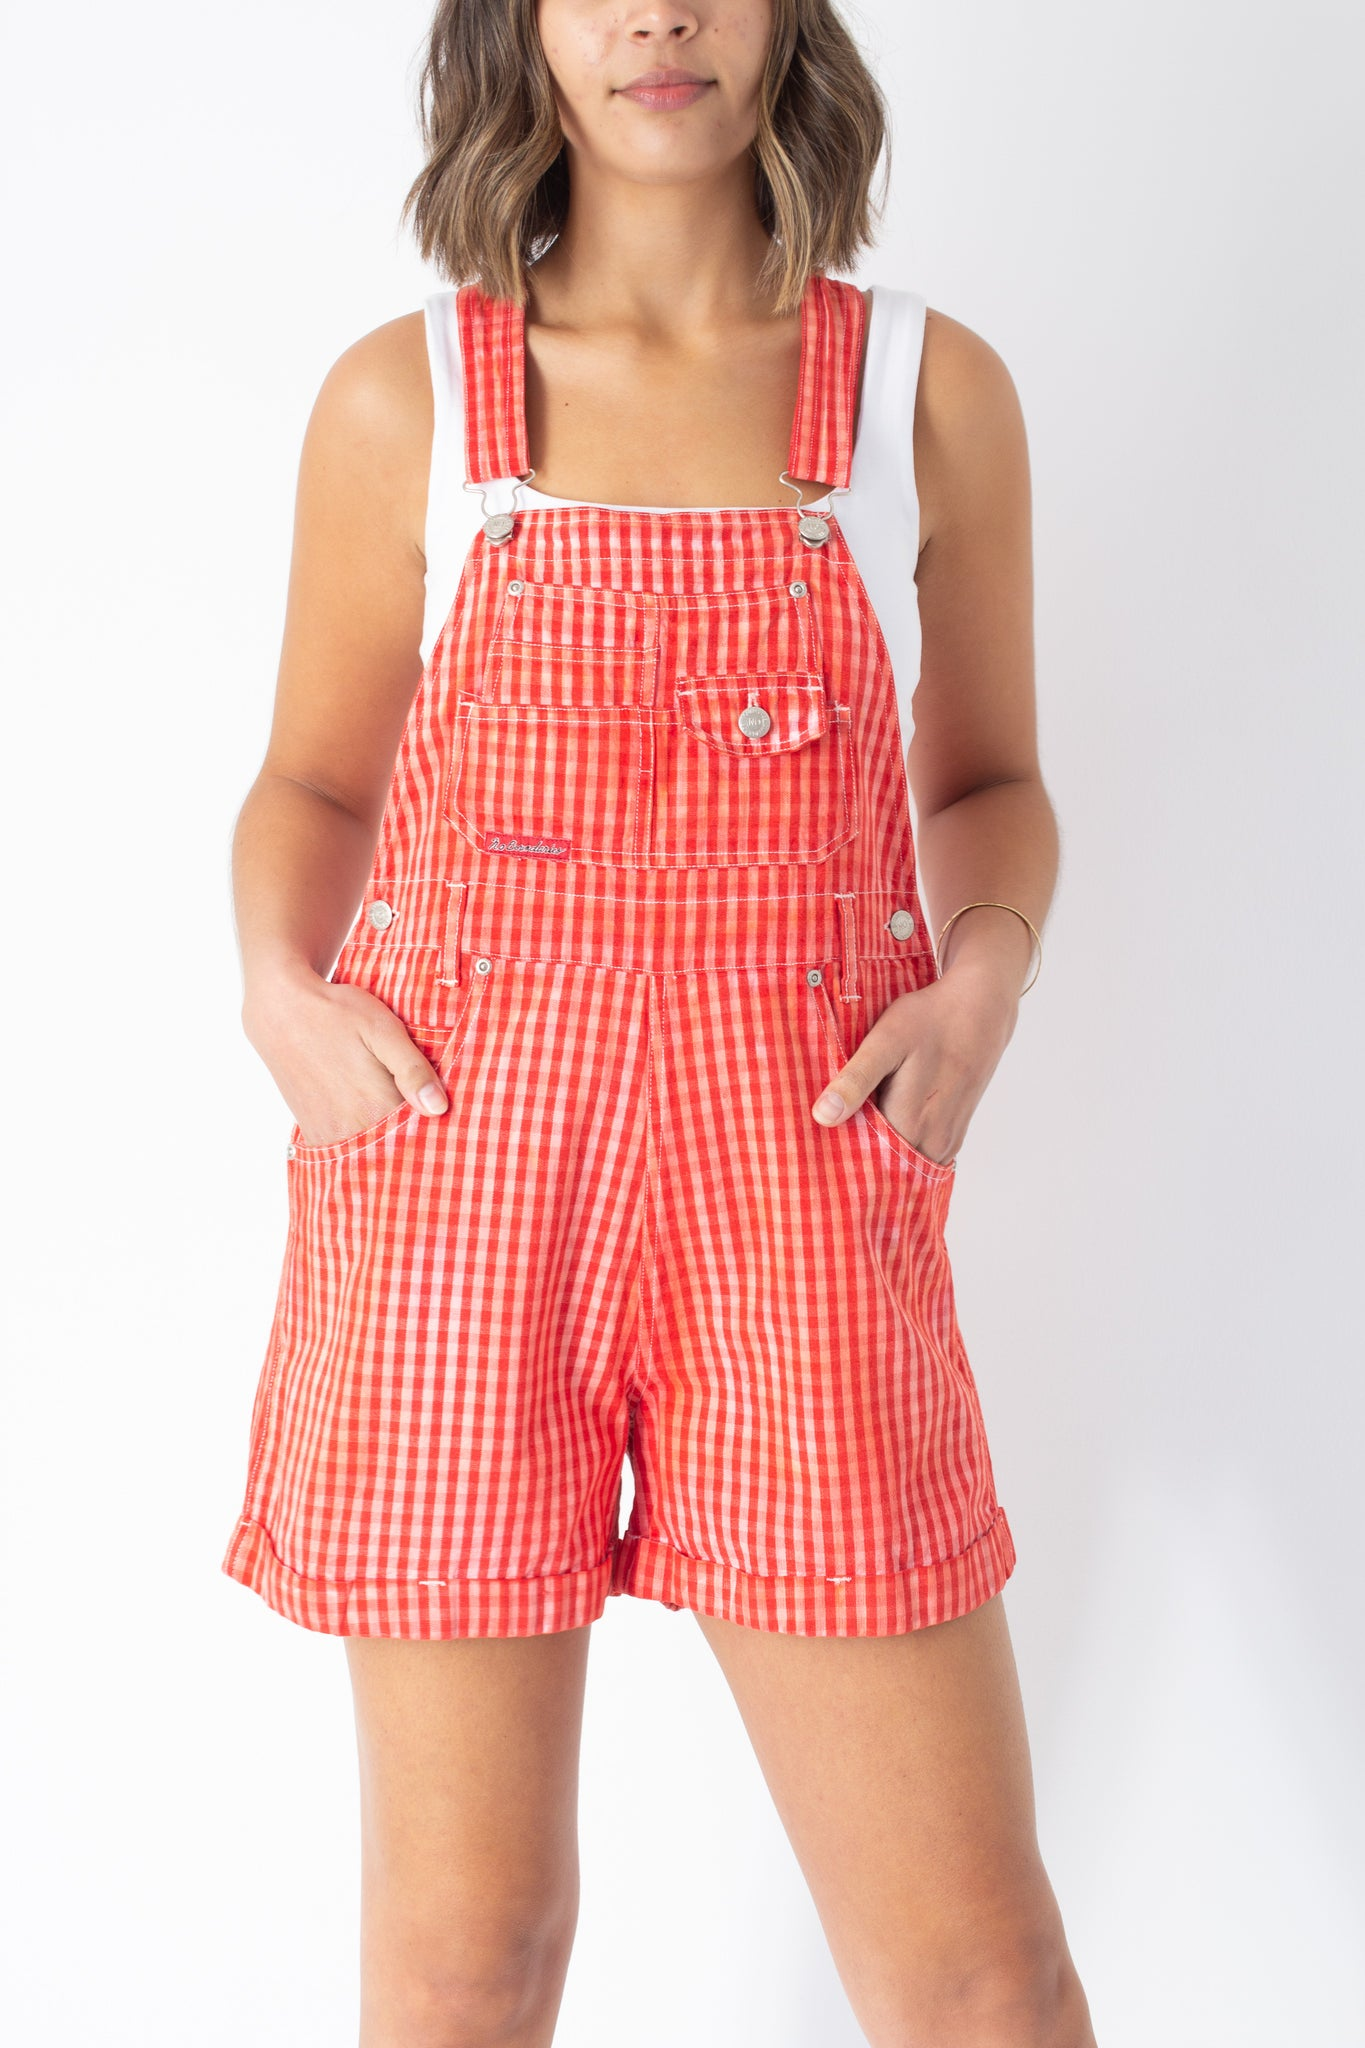 Bright Red Check Overalls - Size M